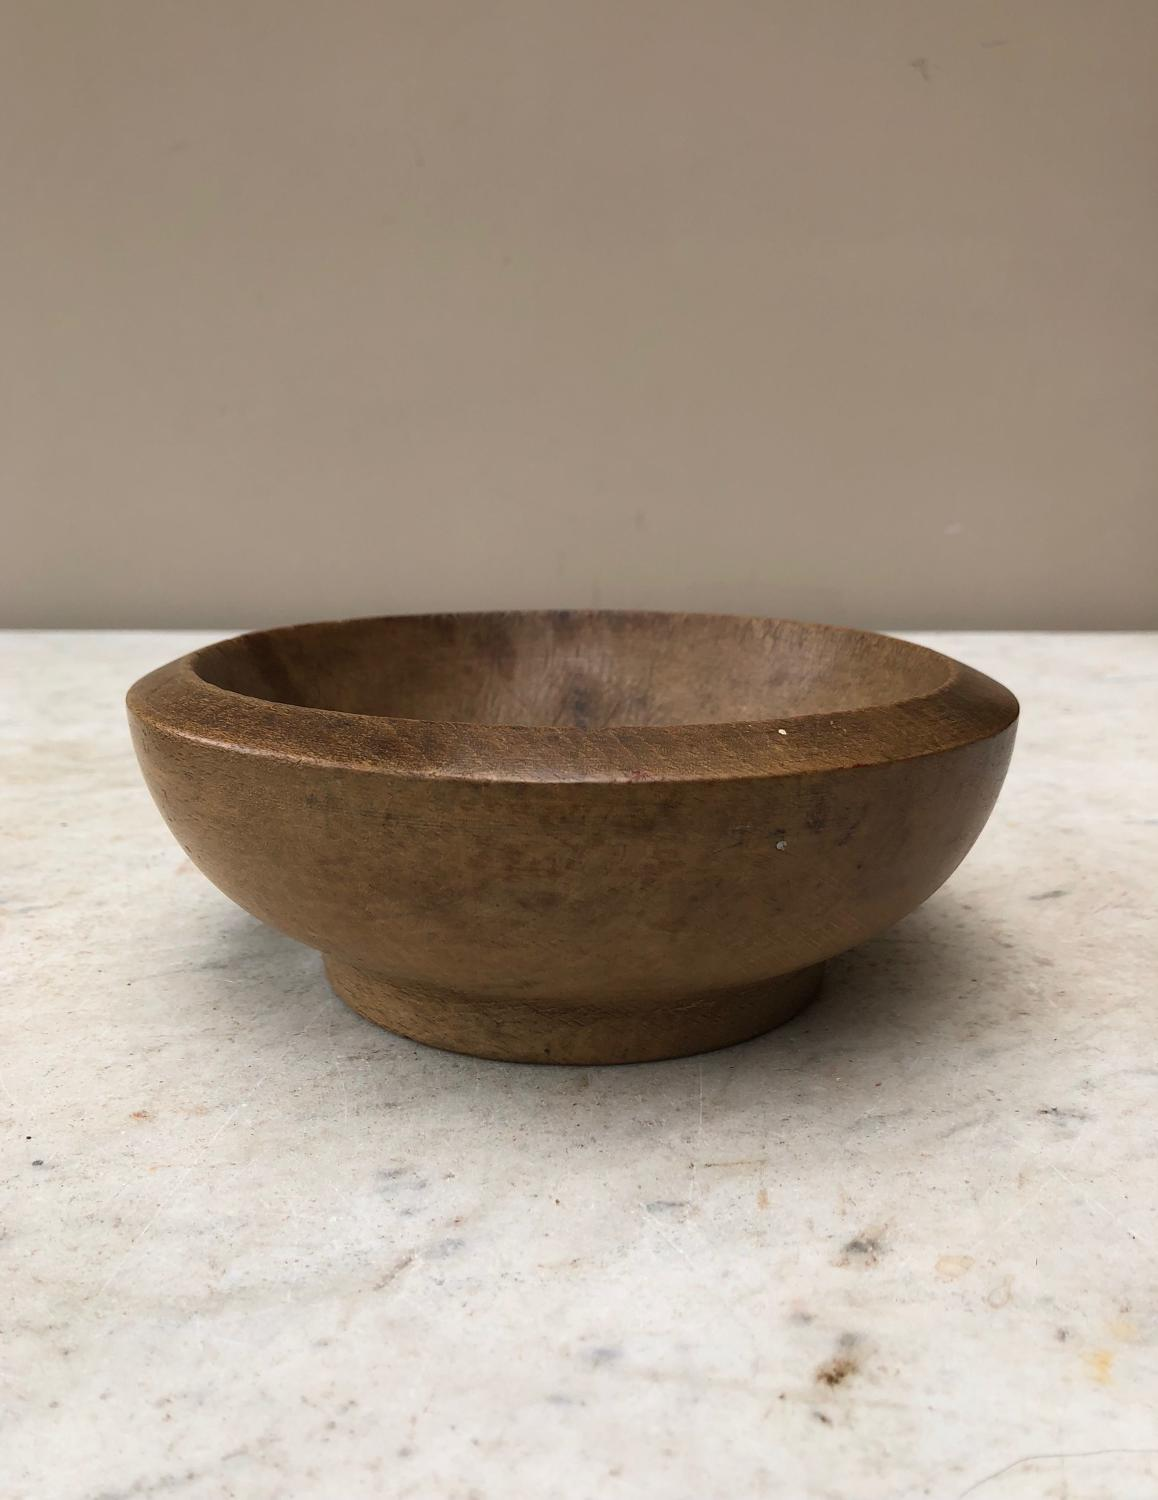 Victorian Treen Herb Chopping Bowl - Handy Small Bowl.